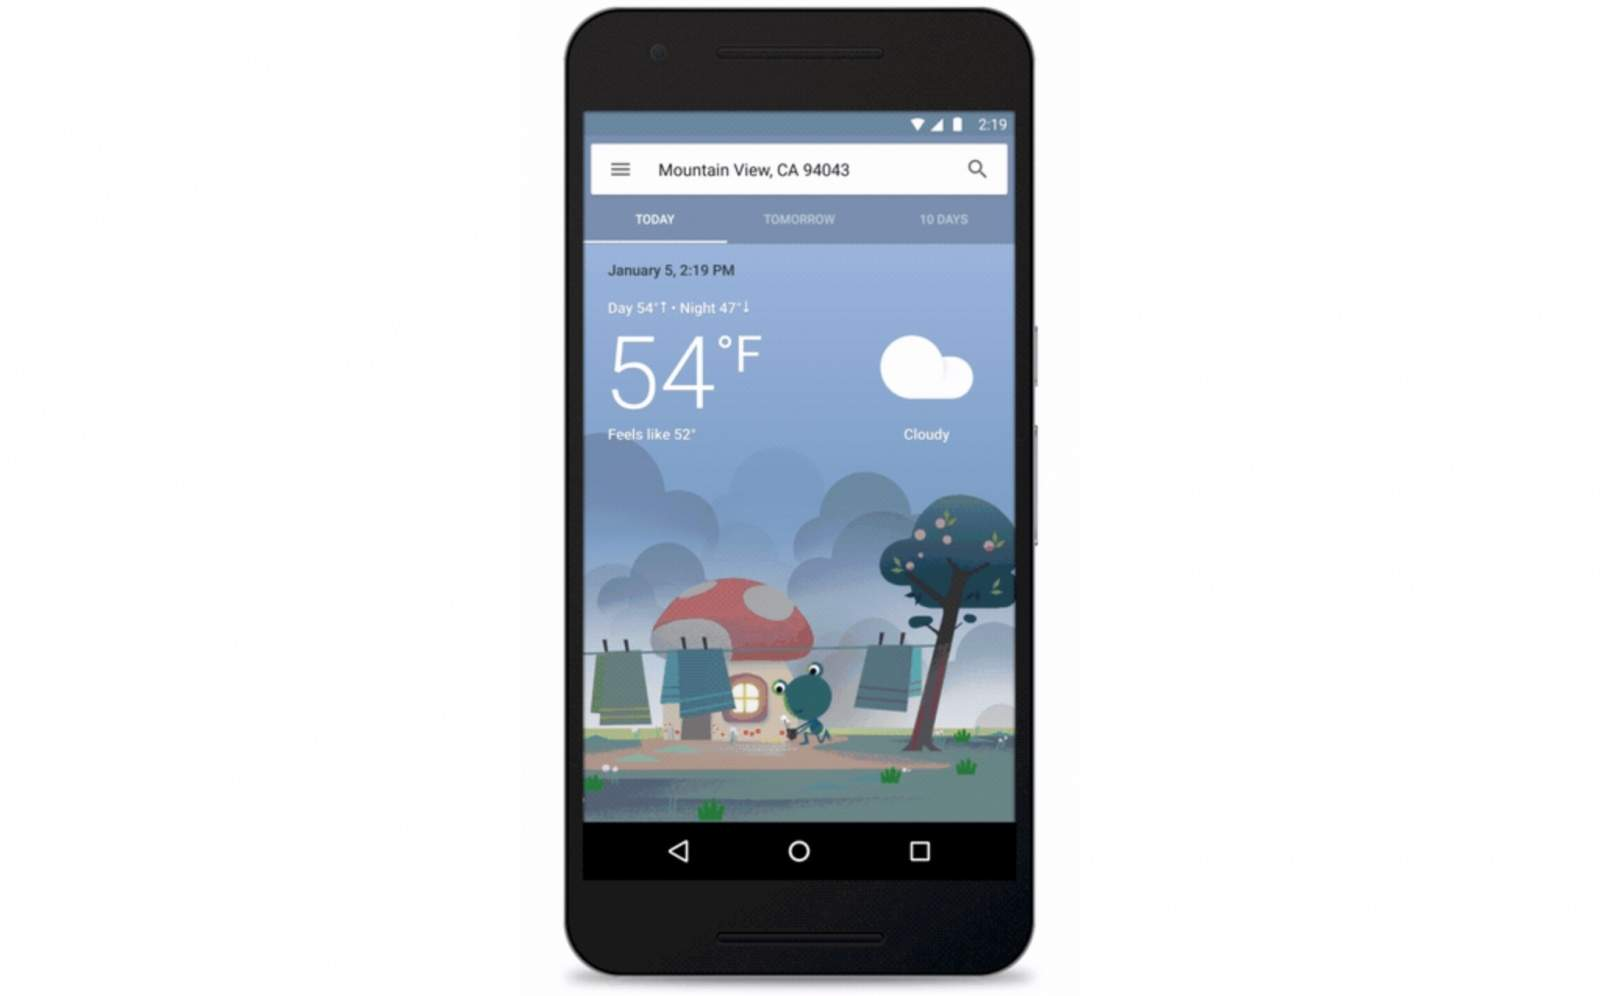 Google has redesigned the way we will see weather forecasts. Image: Google.